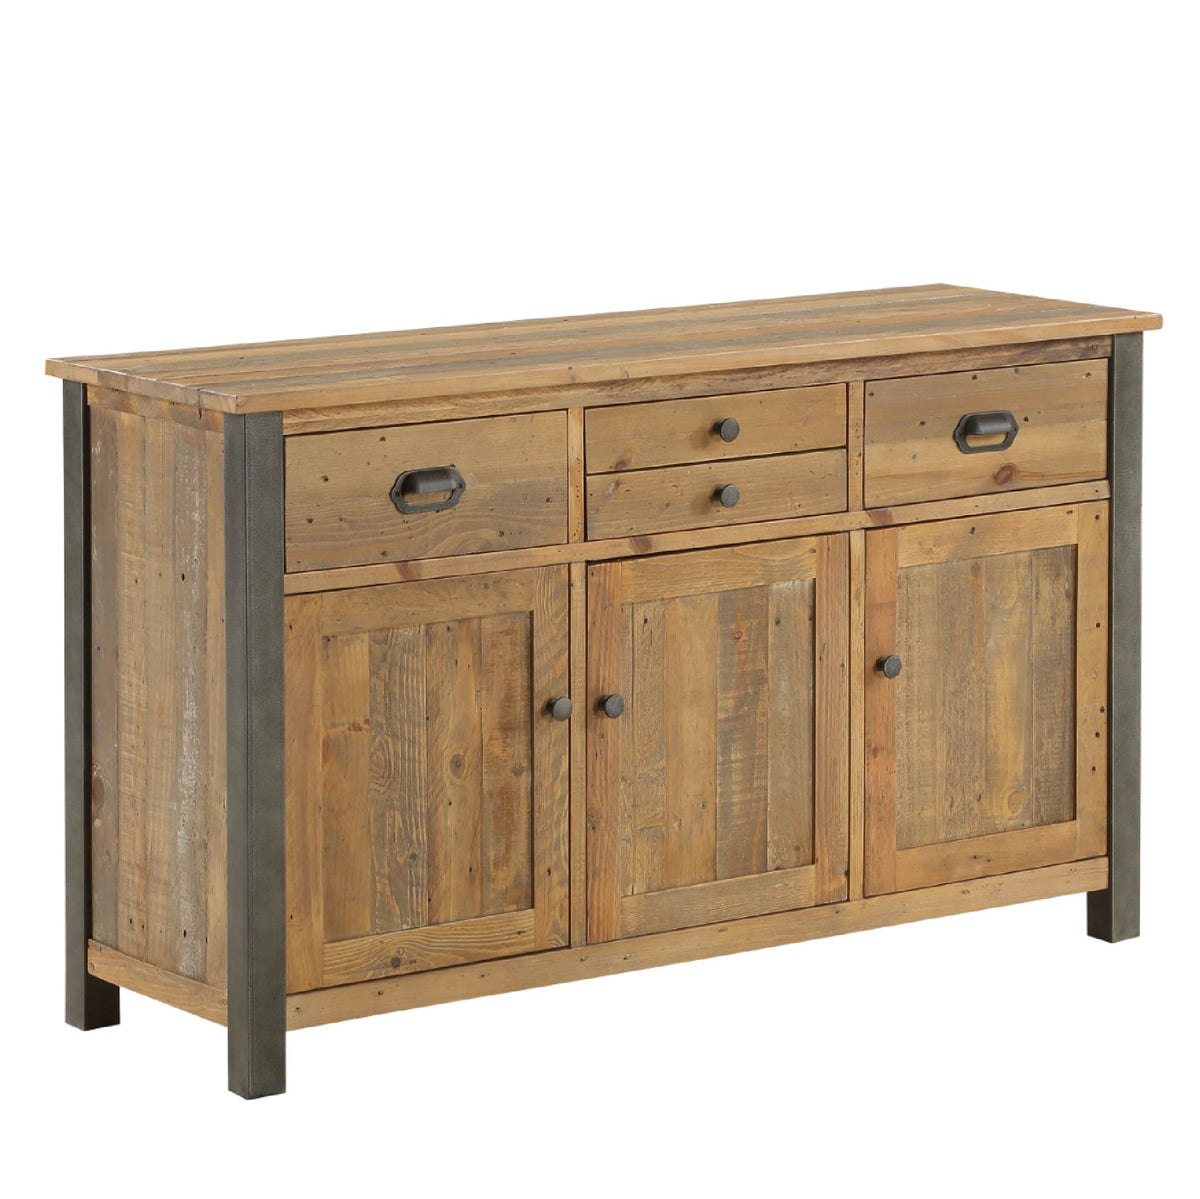 Urban Elegance Reclaimed Wood Large 3 Door Sideboard on white background